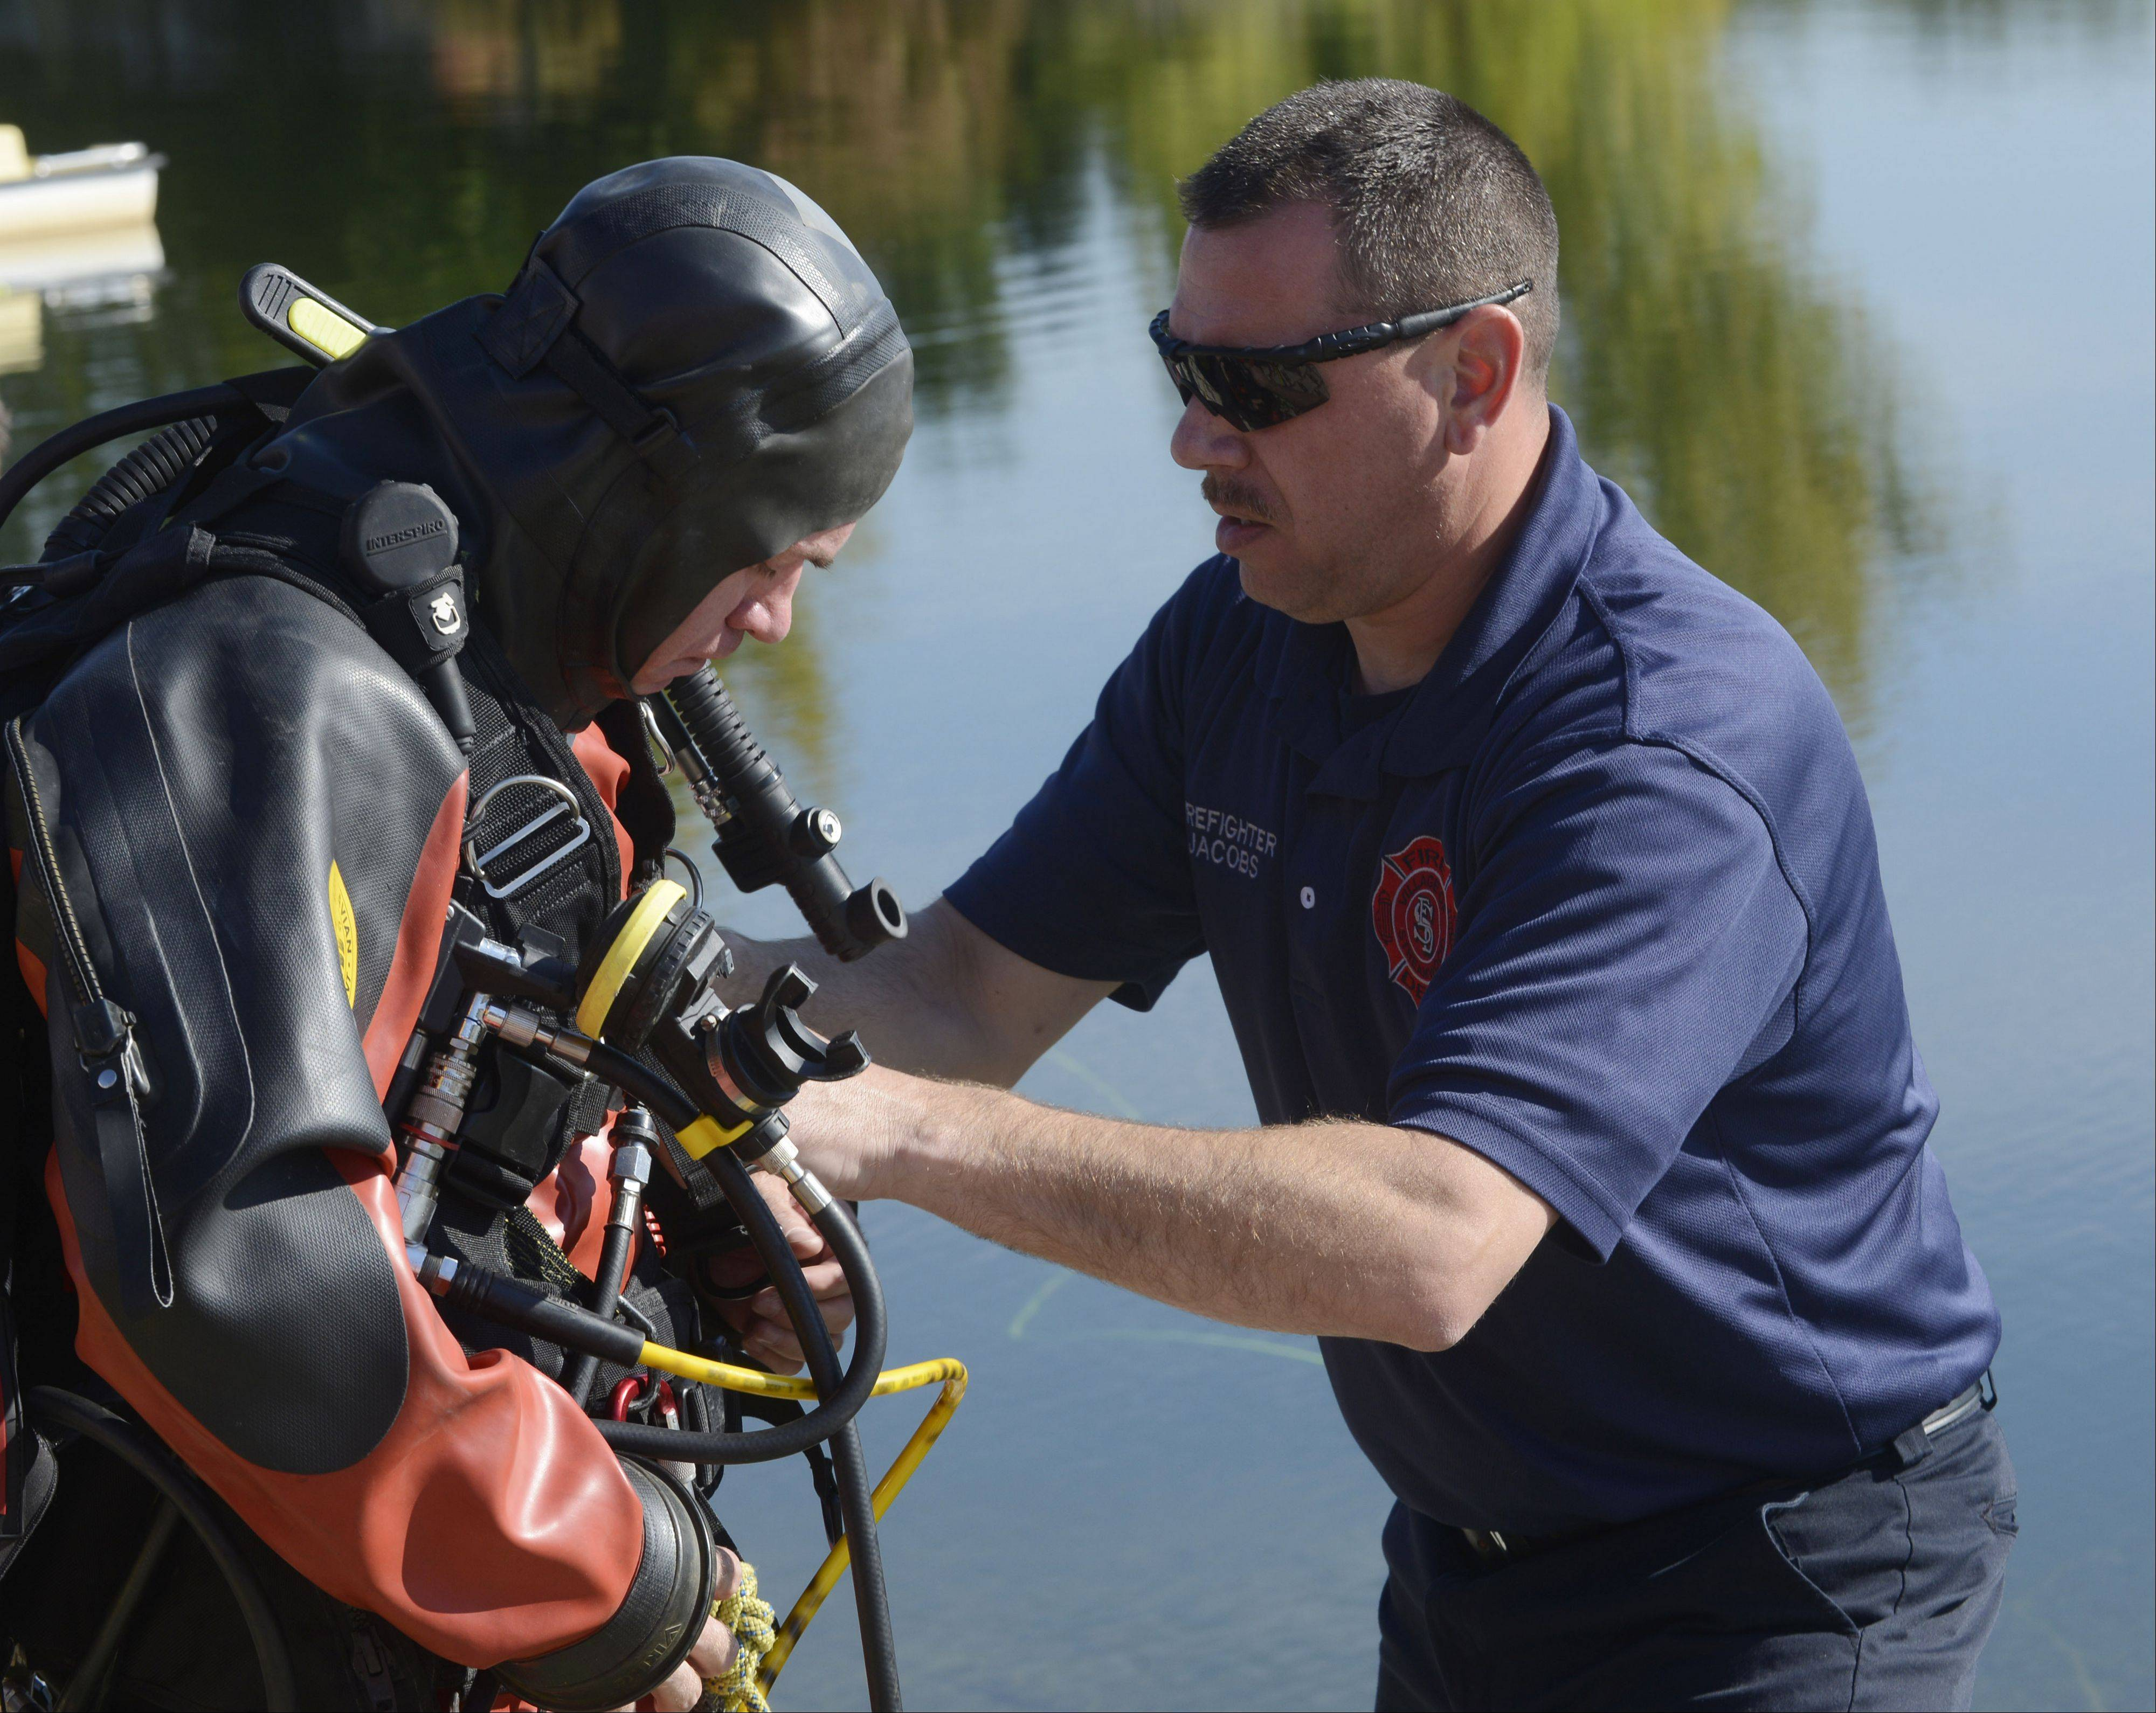 Elk Grove Village firefighter/paramedic Andy Laird receives assistance with his equipment from Streamwood firefighter/paramedic Gary Jacobs as the regional water rescue team from the Mutual Aid Box Alarm System (MABAS) demonstrates water rescue techniques for the division's command officers Friday at Twin Lakes Recreation Area in Palatine.